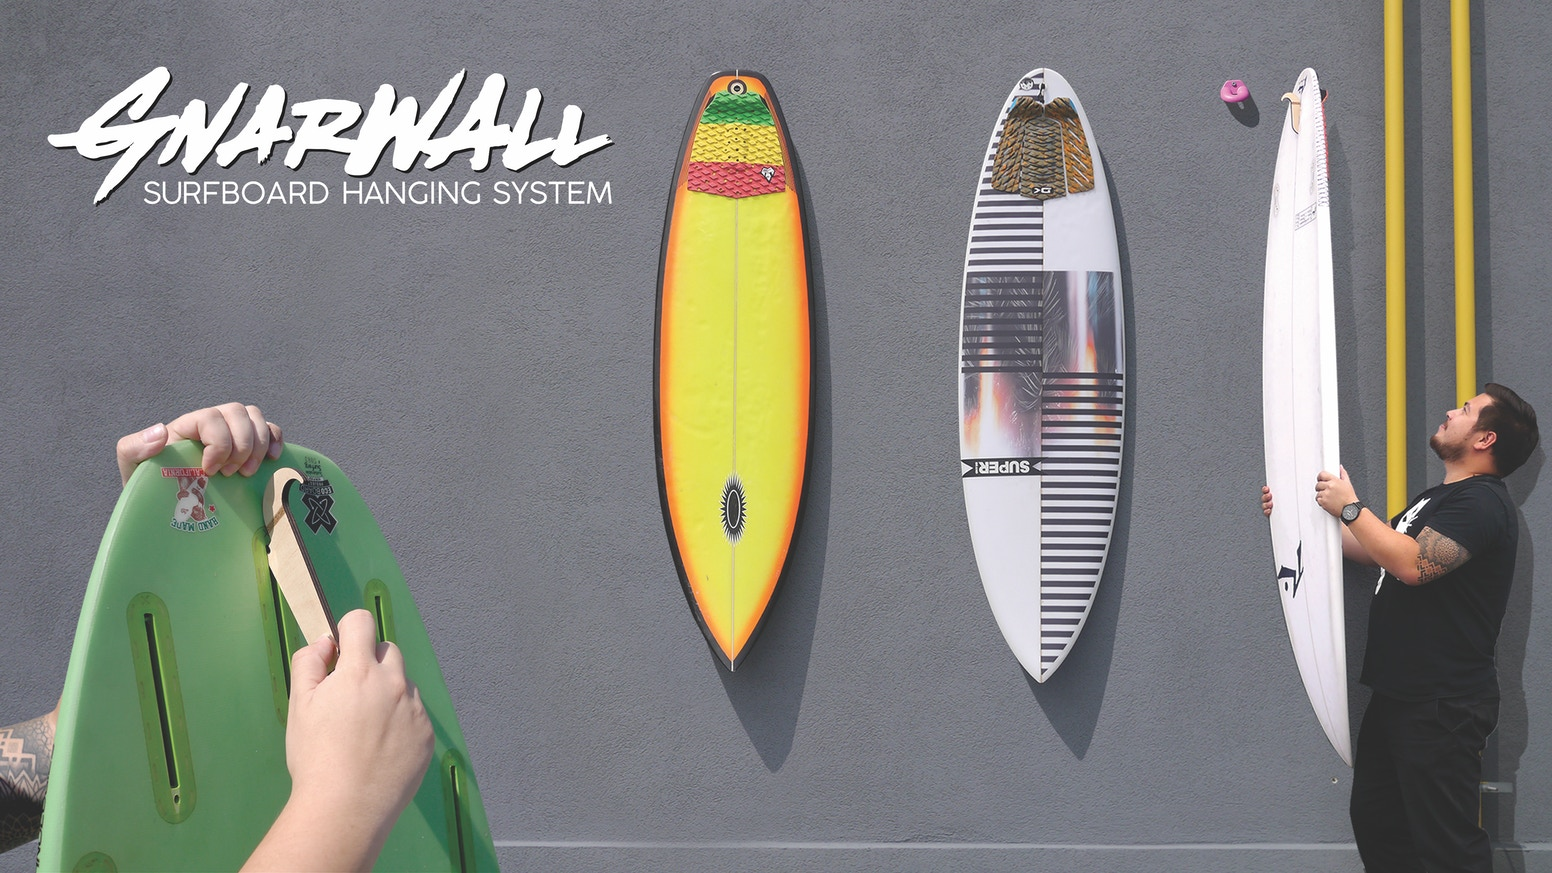 A Sustainable Surfboard Wall Hanging System That Makes It Easy To And Display Your Gnarly